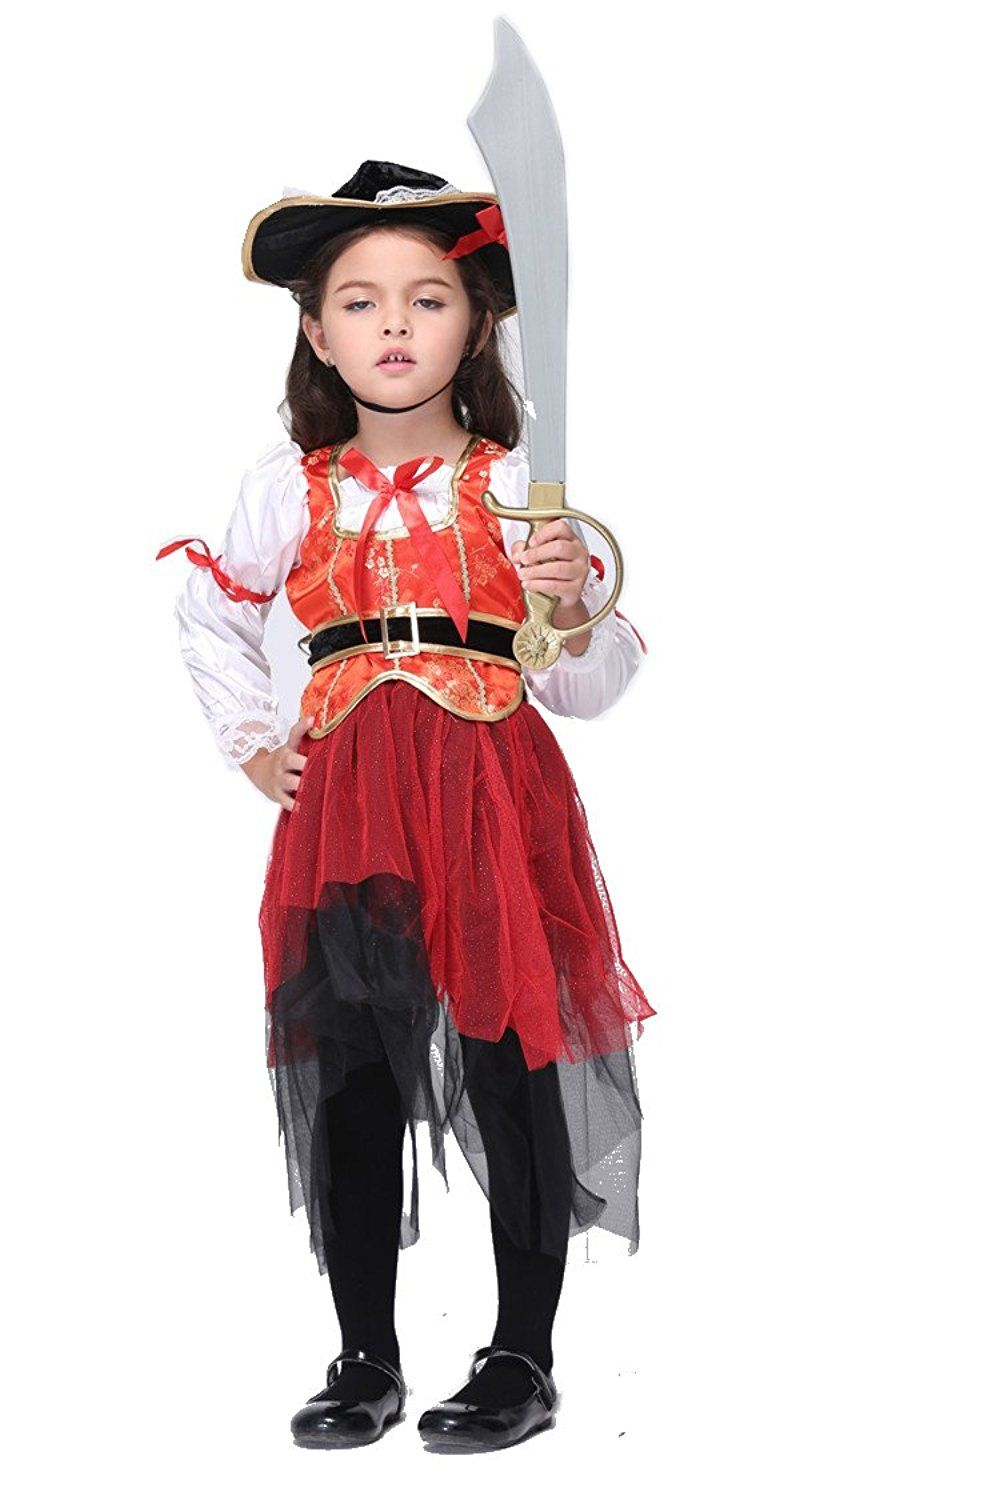 NonEcho Girls Pirate Halloween Costume for 311 Years Old